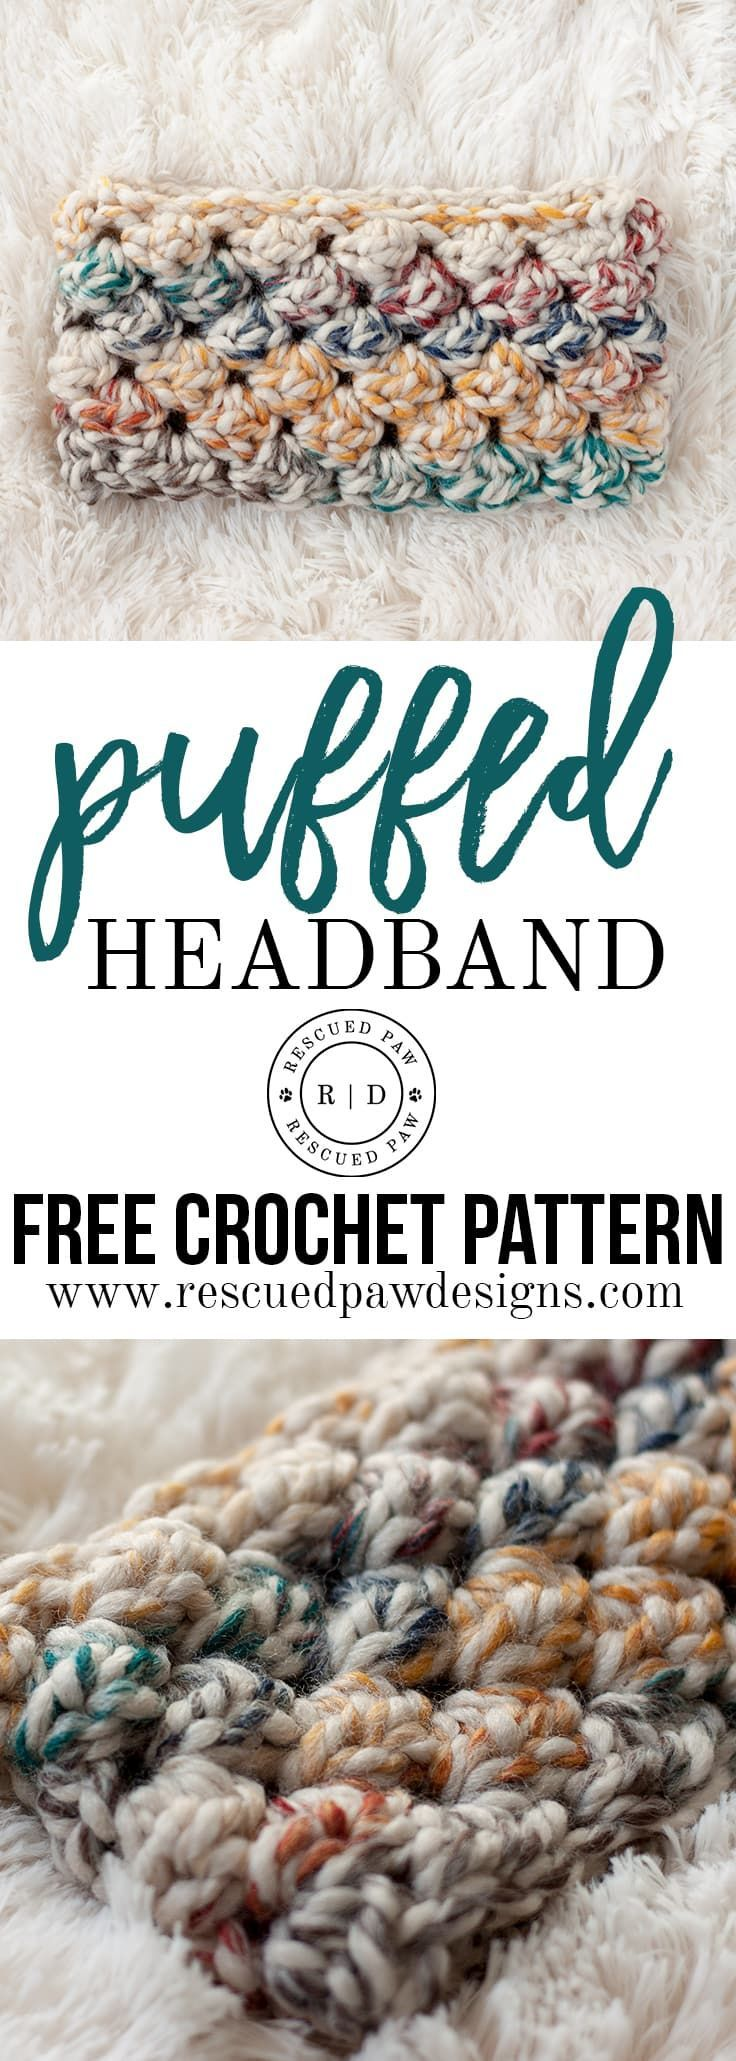 Puffed Headband Crochet Pattern - A FREE crochet pattern from Rescued Paw Designs